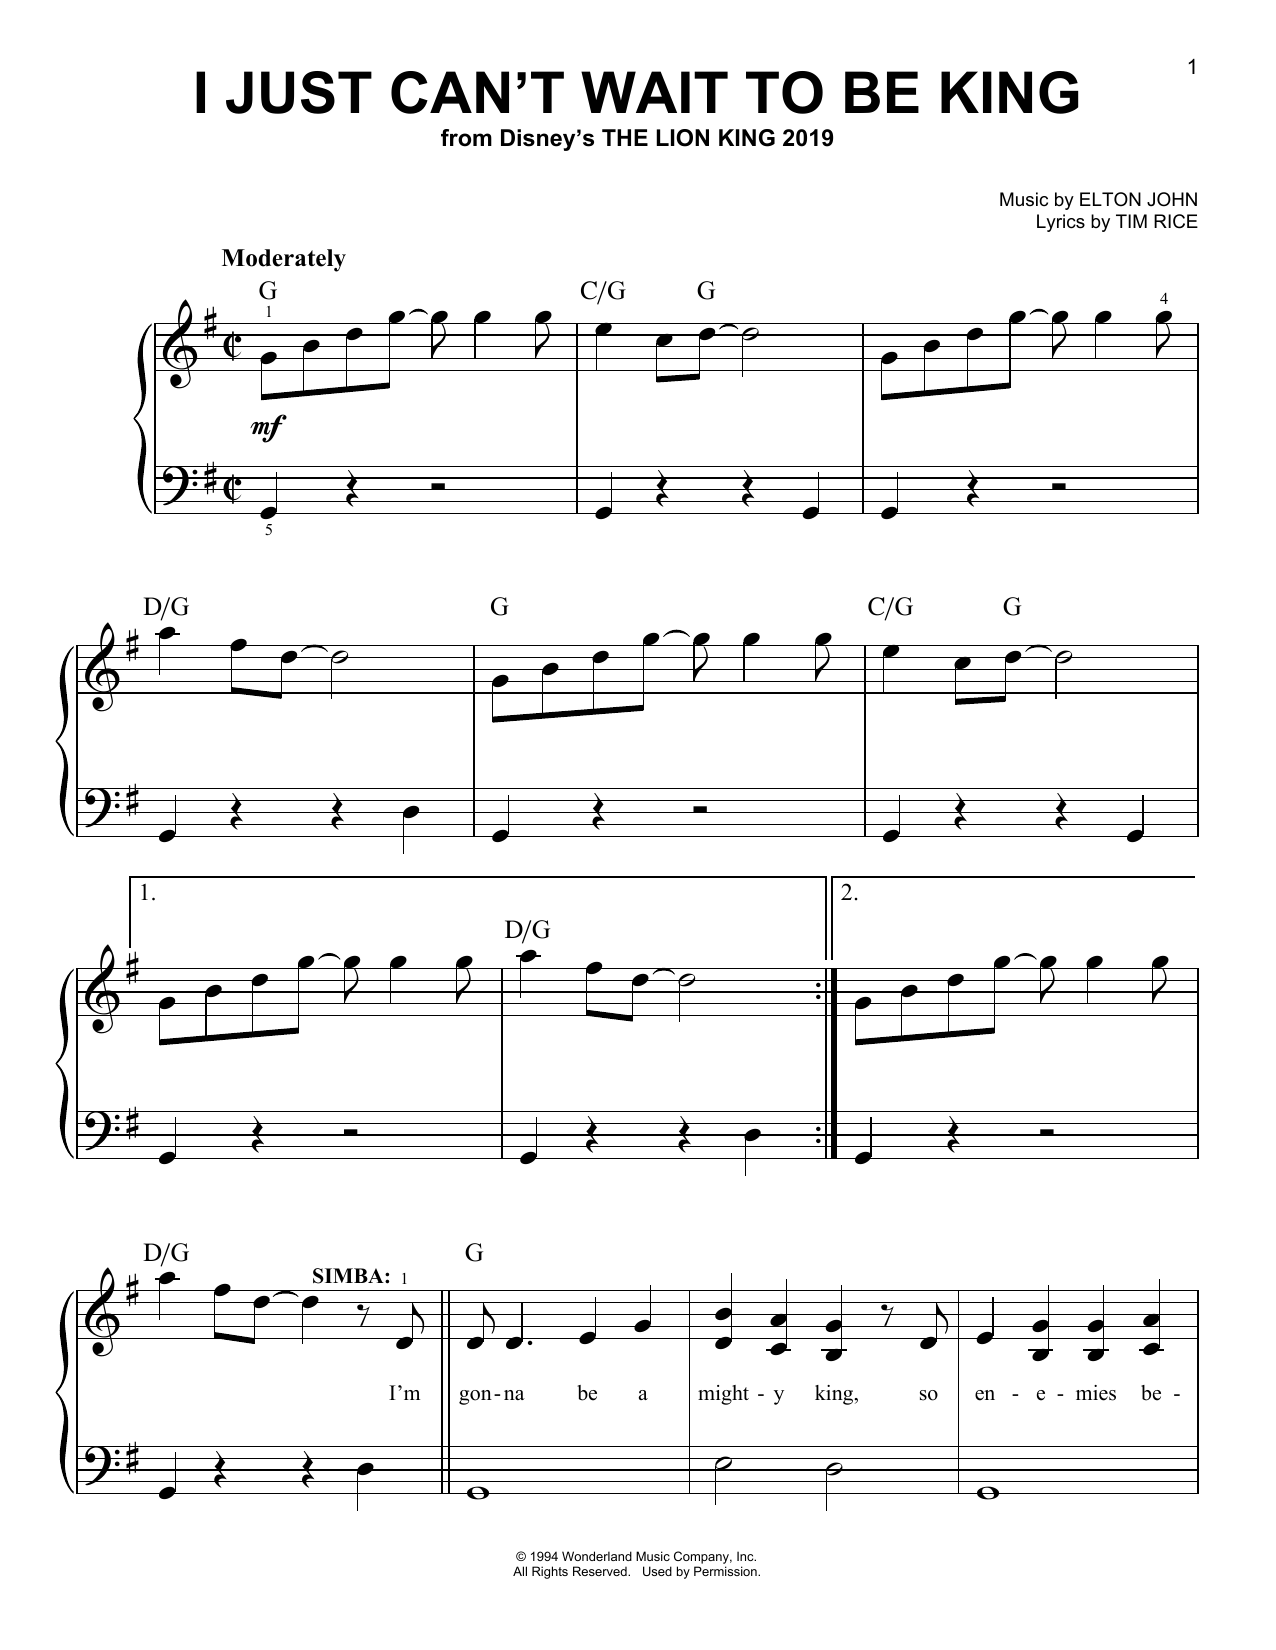 Elton John I Just Can't Wait To Be King (from The Lion King 2019) sheet music notes and chords. Download Printable PDF.